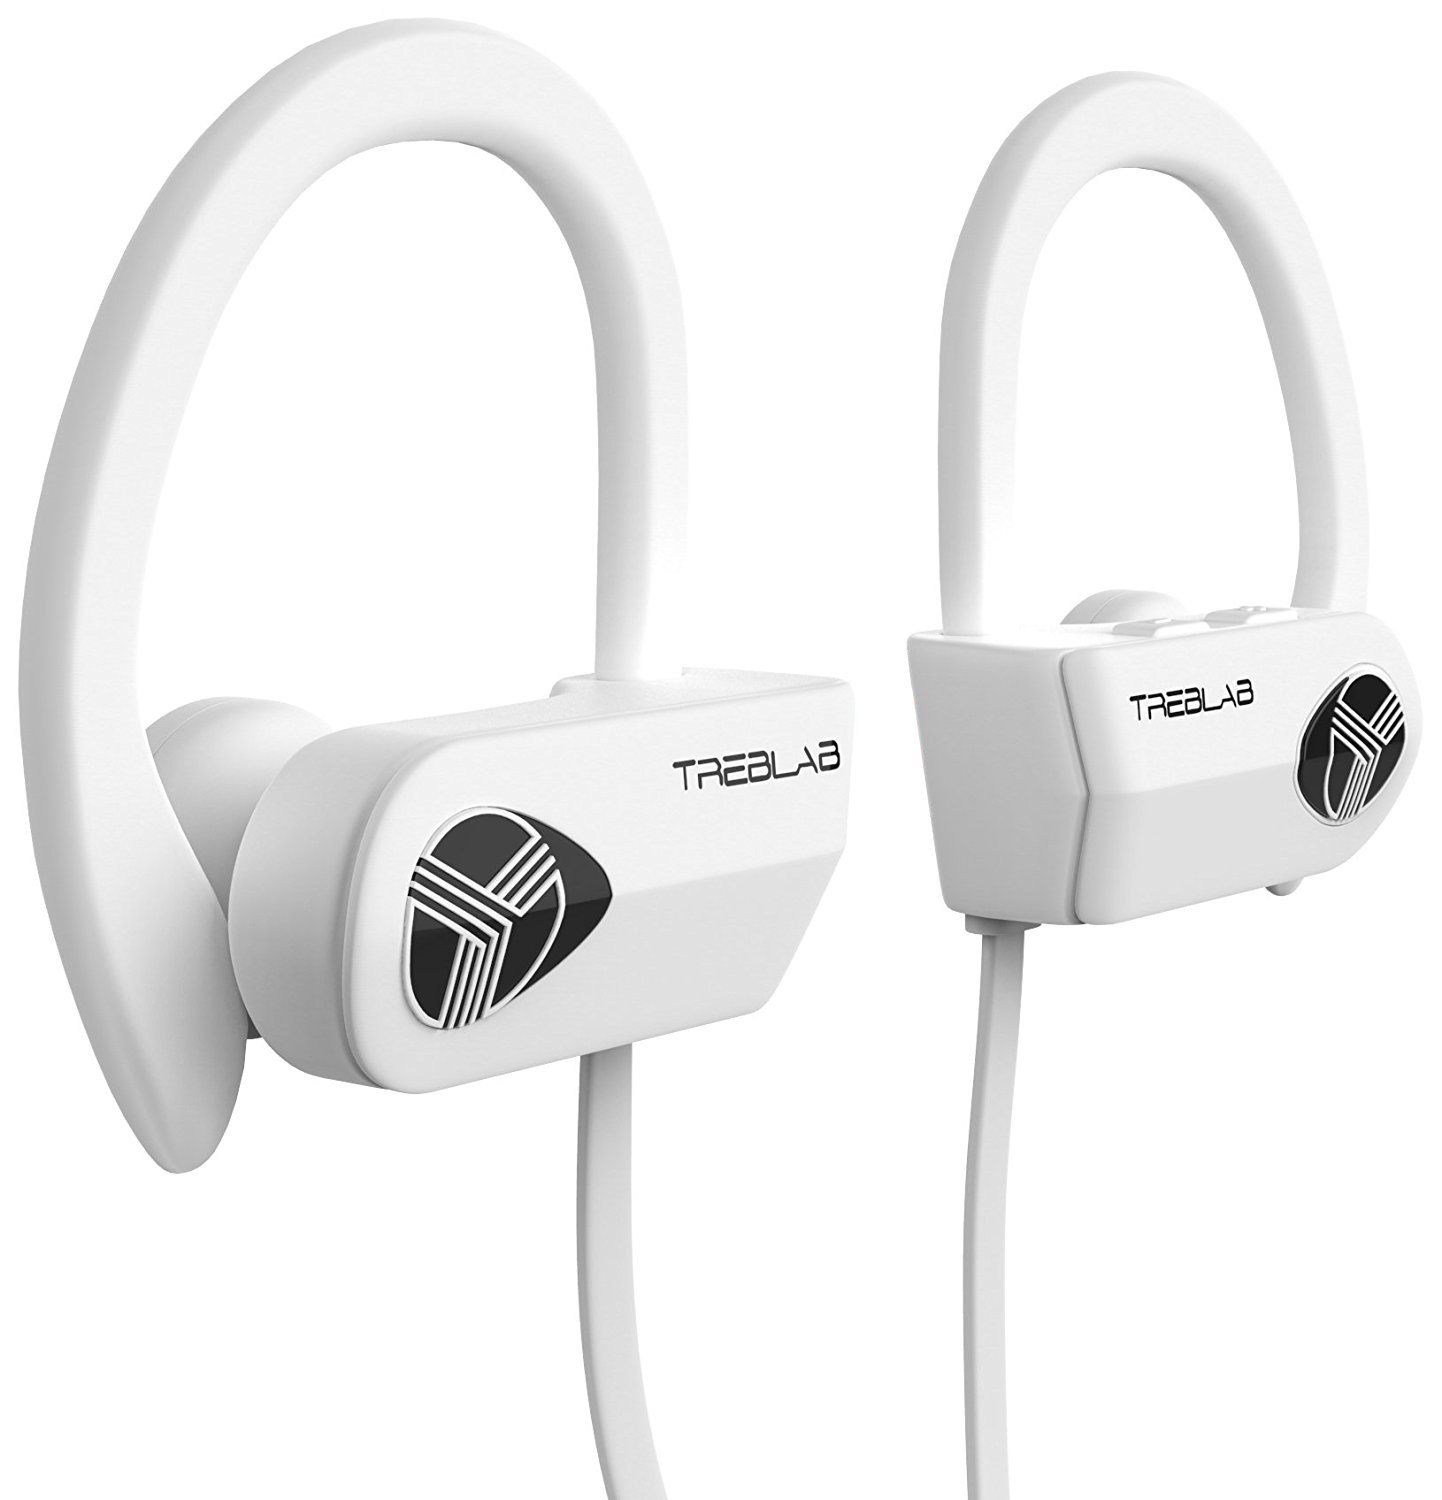 TREBLAB XR500 Bluetooth Headphones, Best Wireless Earbuds For Sports, Running Or Gym Workout. 2017 Updated Version. IPX7 Waterproof, Sweatproof, Secure-Fit ...